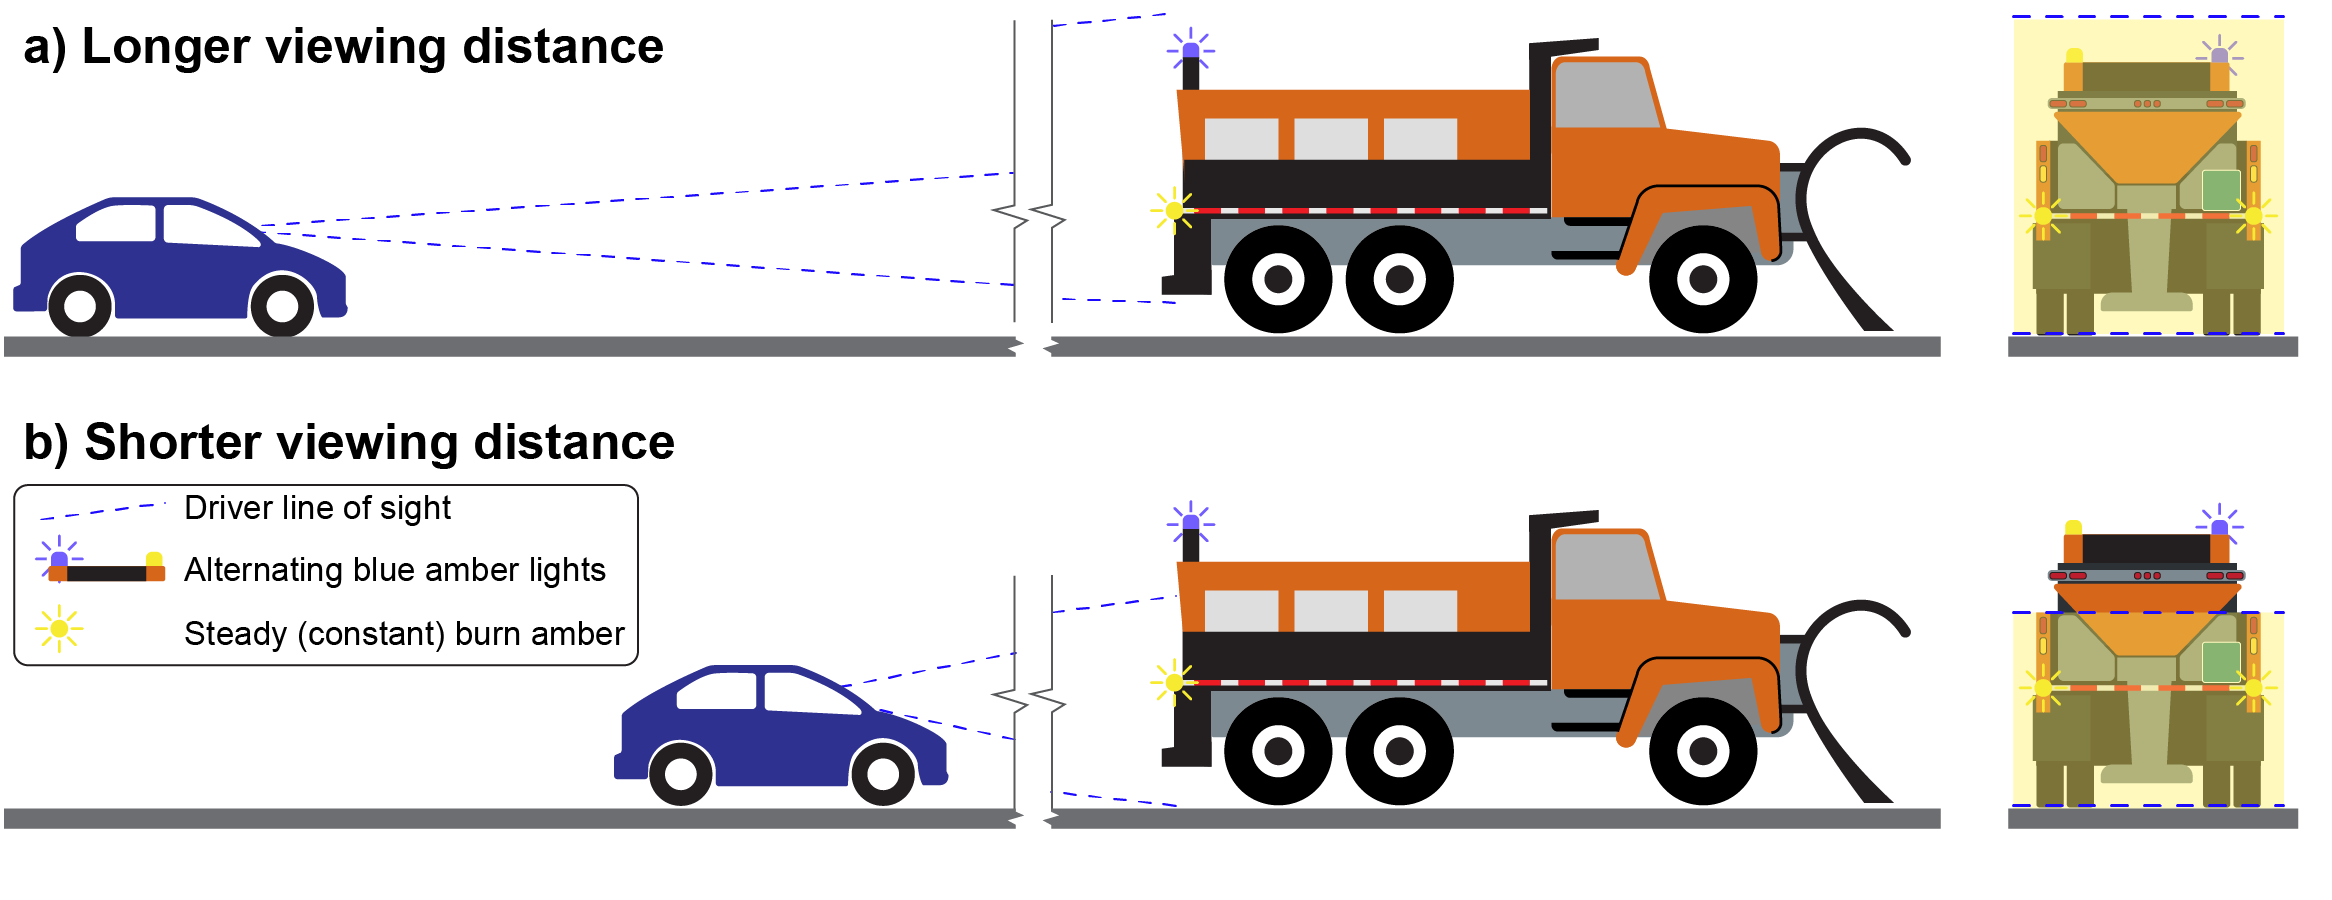 Graphic indicating different view angles based on following distance behind a snowplow. Intent to determine the importance of the placement of rear facing lights